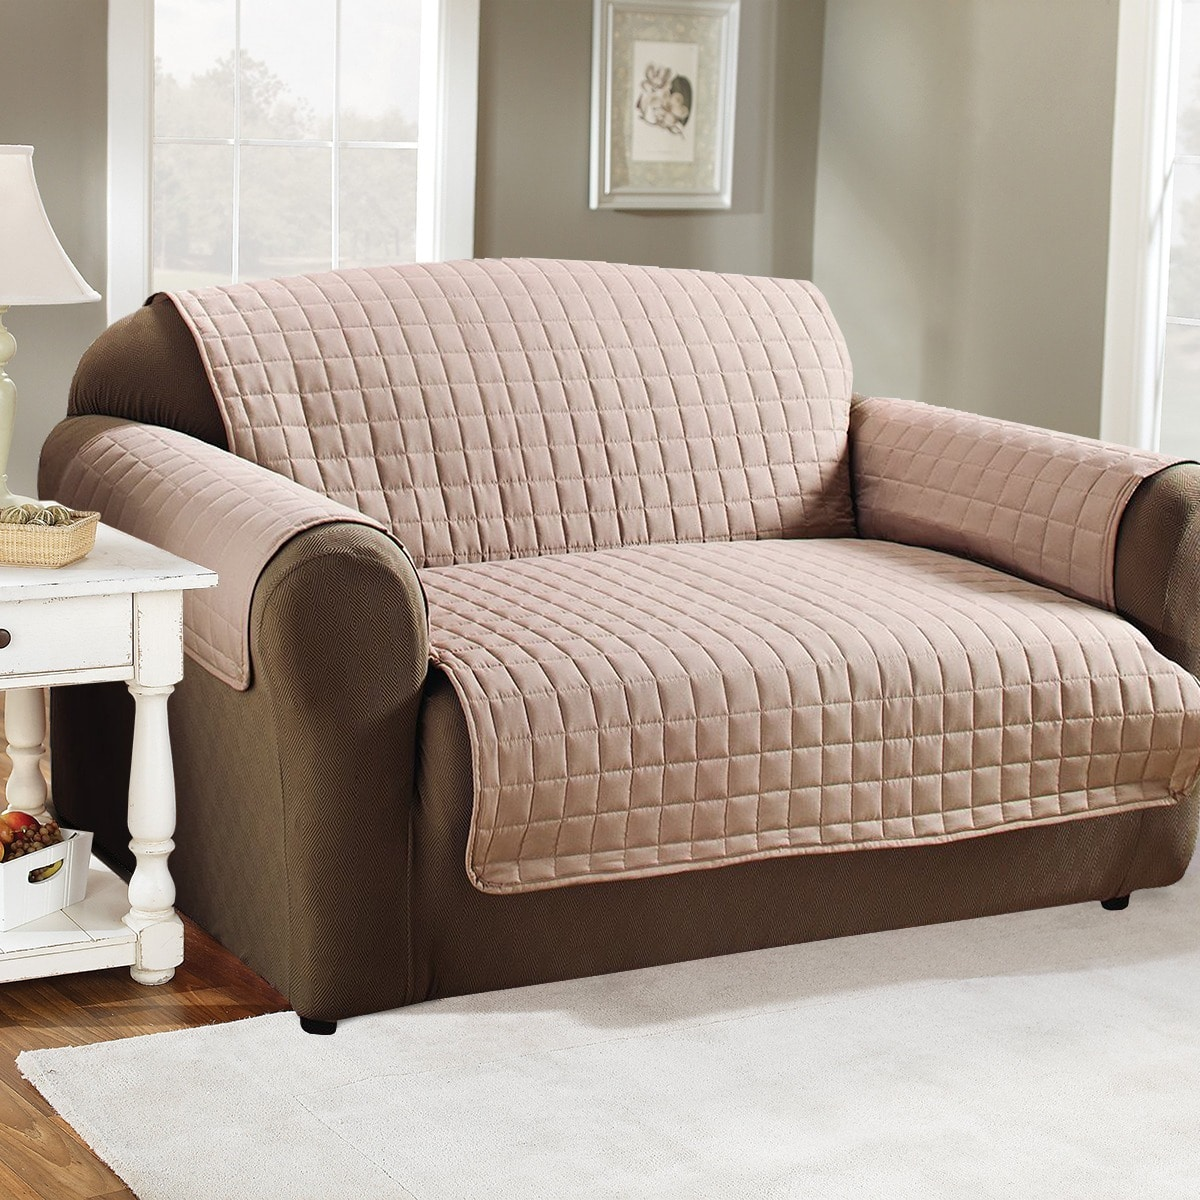 Superior Luxury Furniture Protector For Sofa   Free Shipping On Orders Over $45    Overstock.com   16404164